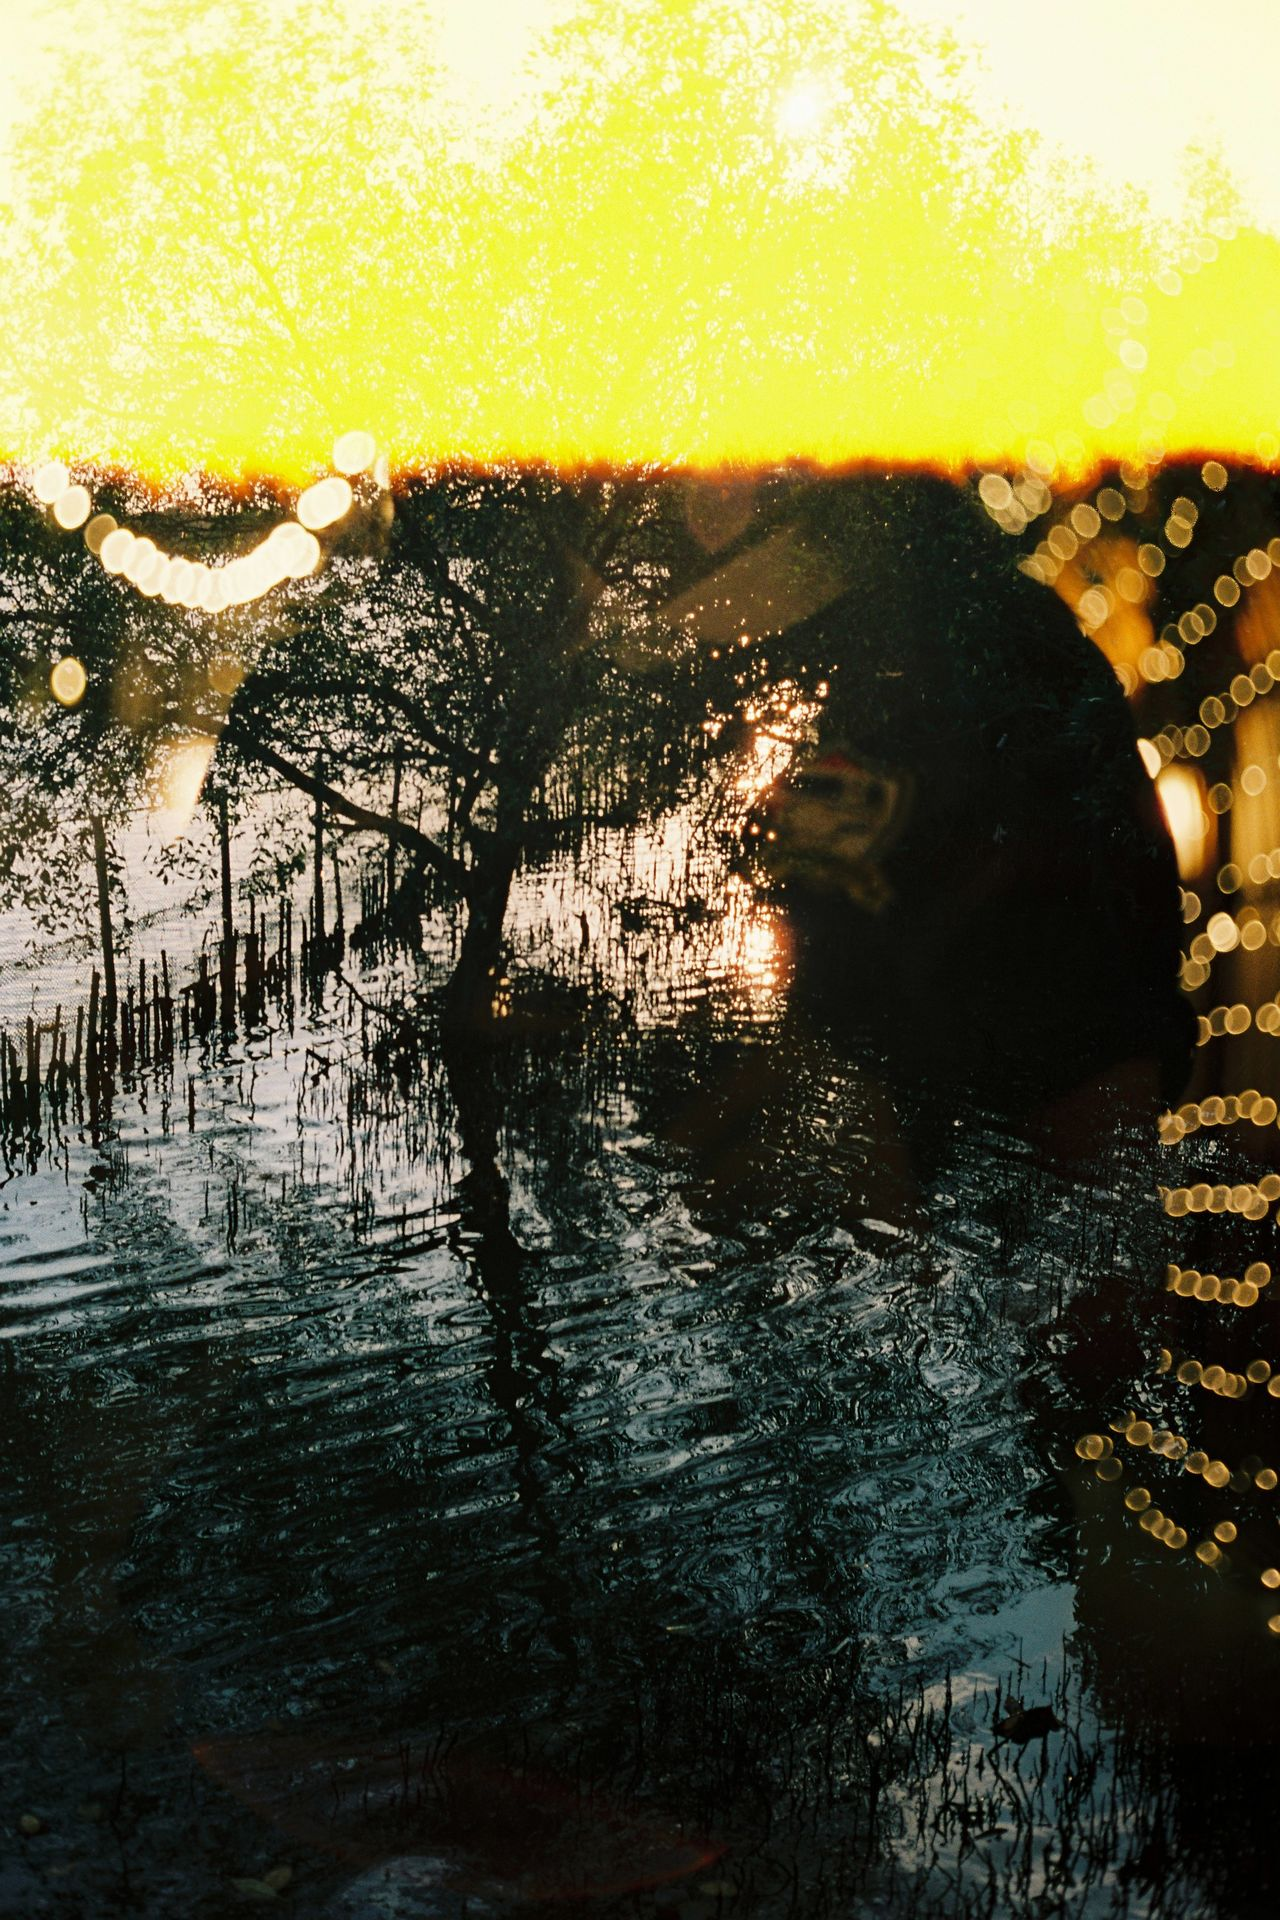 Sunset Tree One Person Silhouette Water Outdoors Nature Creativity Natural Light Feeling EyeEmNewHere Social Issues Inthemoment Analog Filmphotographer Filmisnotdead Lifestyles Multi-layered Effect Doubleexposure Lighting Nature Reflection Travel Destinations Eyemphotography Life In Motion